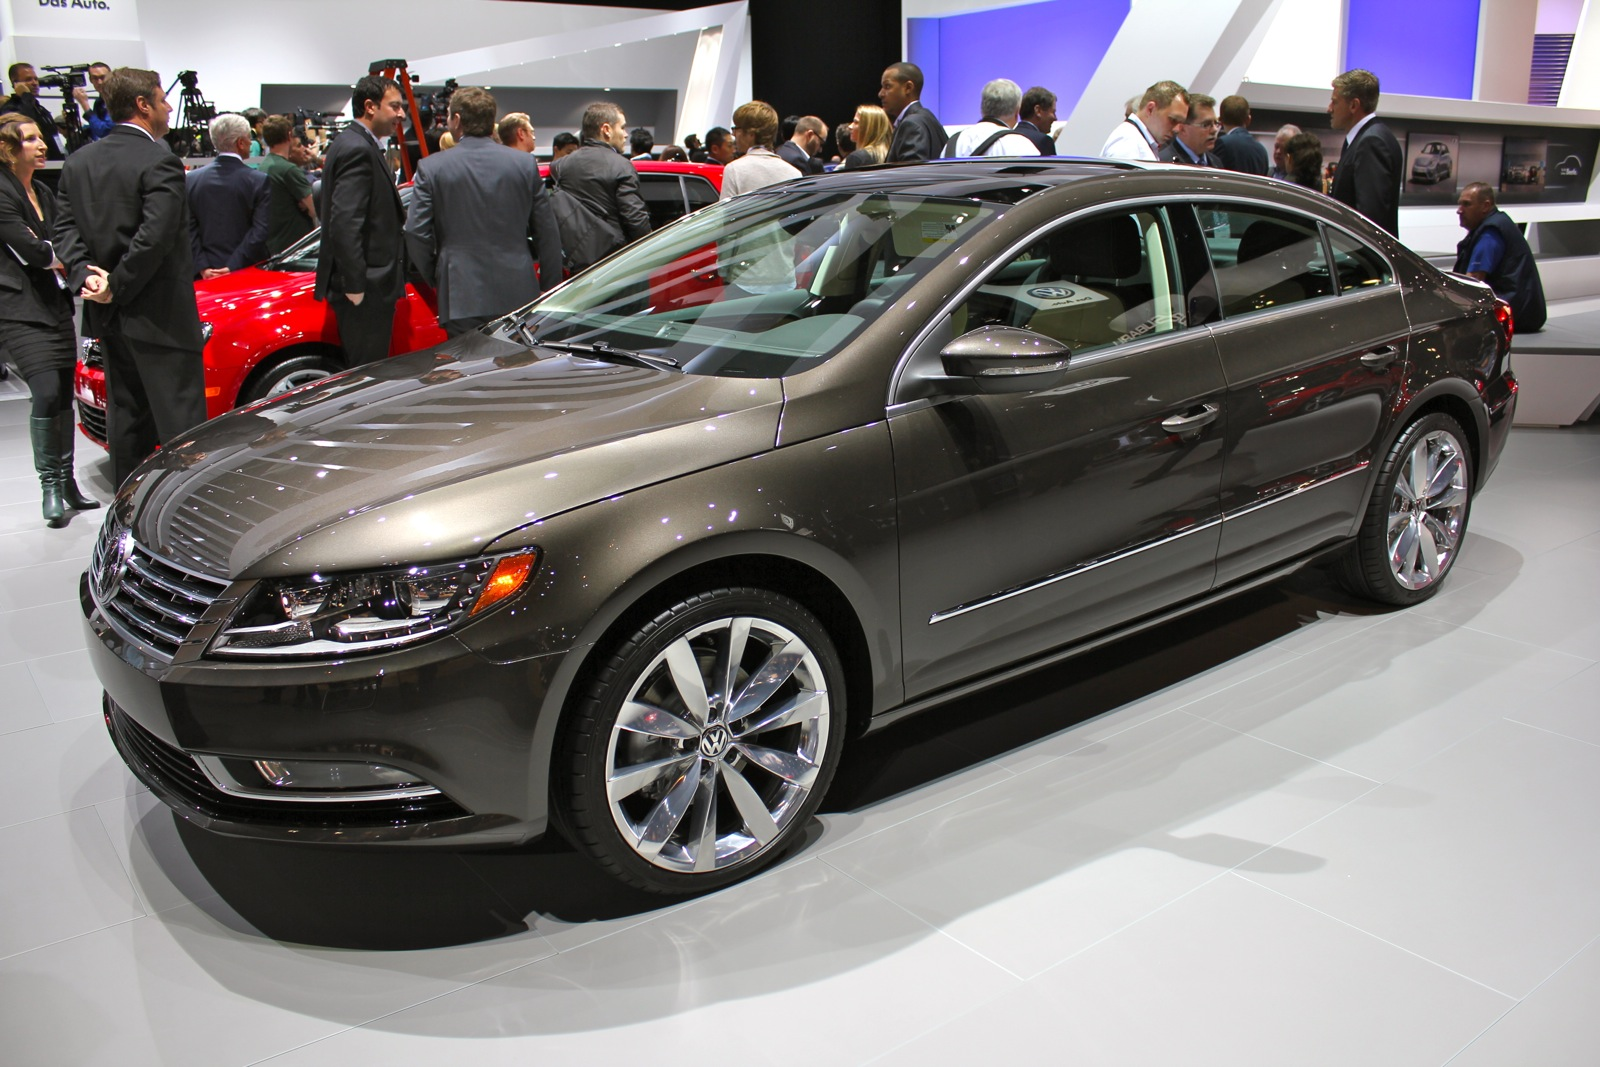 Kia Near Me >> 2013 Volkswagen CC: Mid-Size Luxury Sedan Debuts At 2011 Los Angeles Auto Show